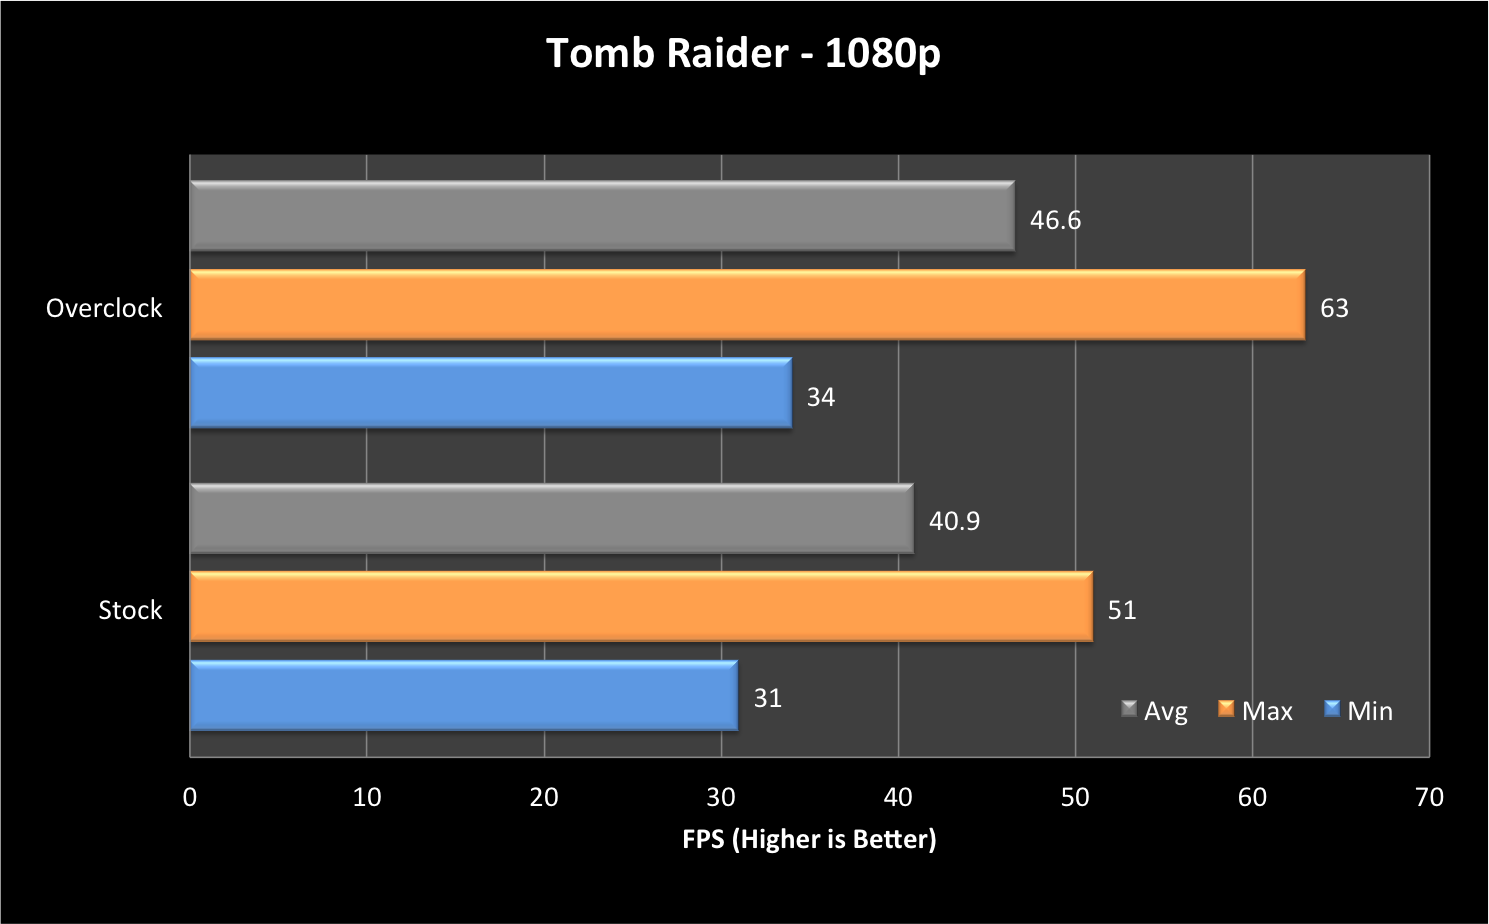 TombRaider - 1080